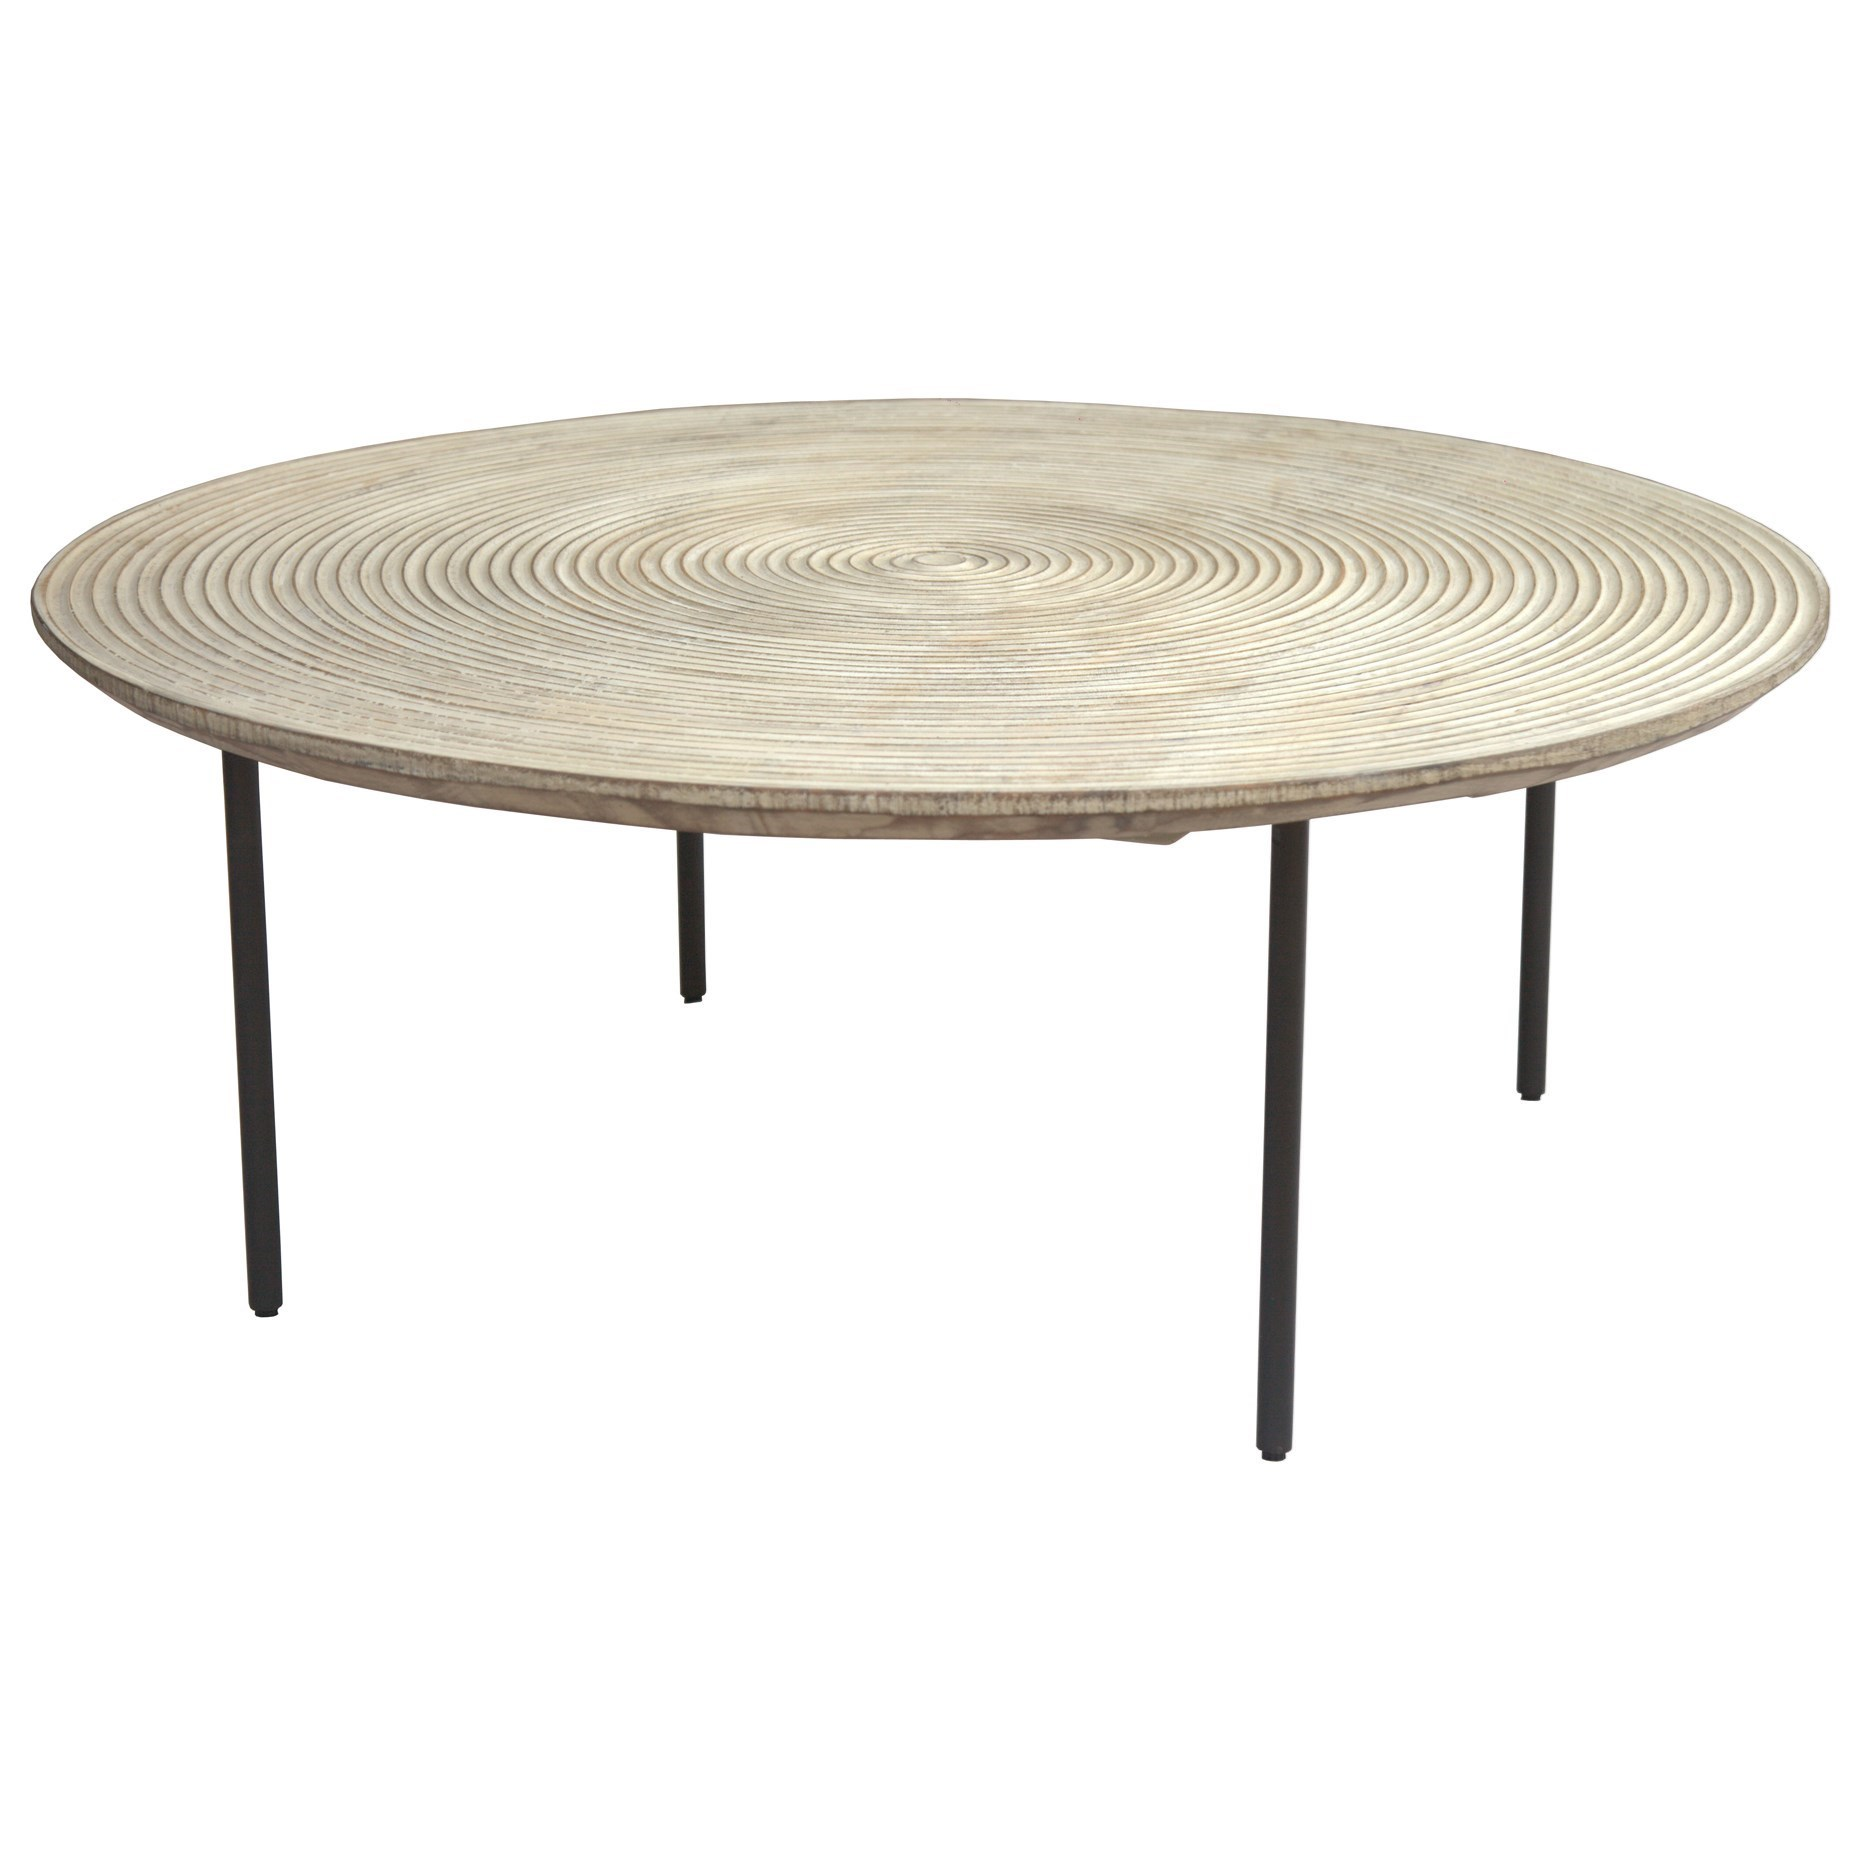 Vortex Coffee Table at Bennett's Furniture and Mattresses